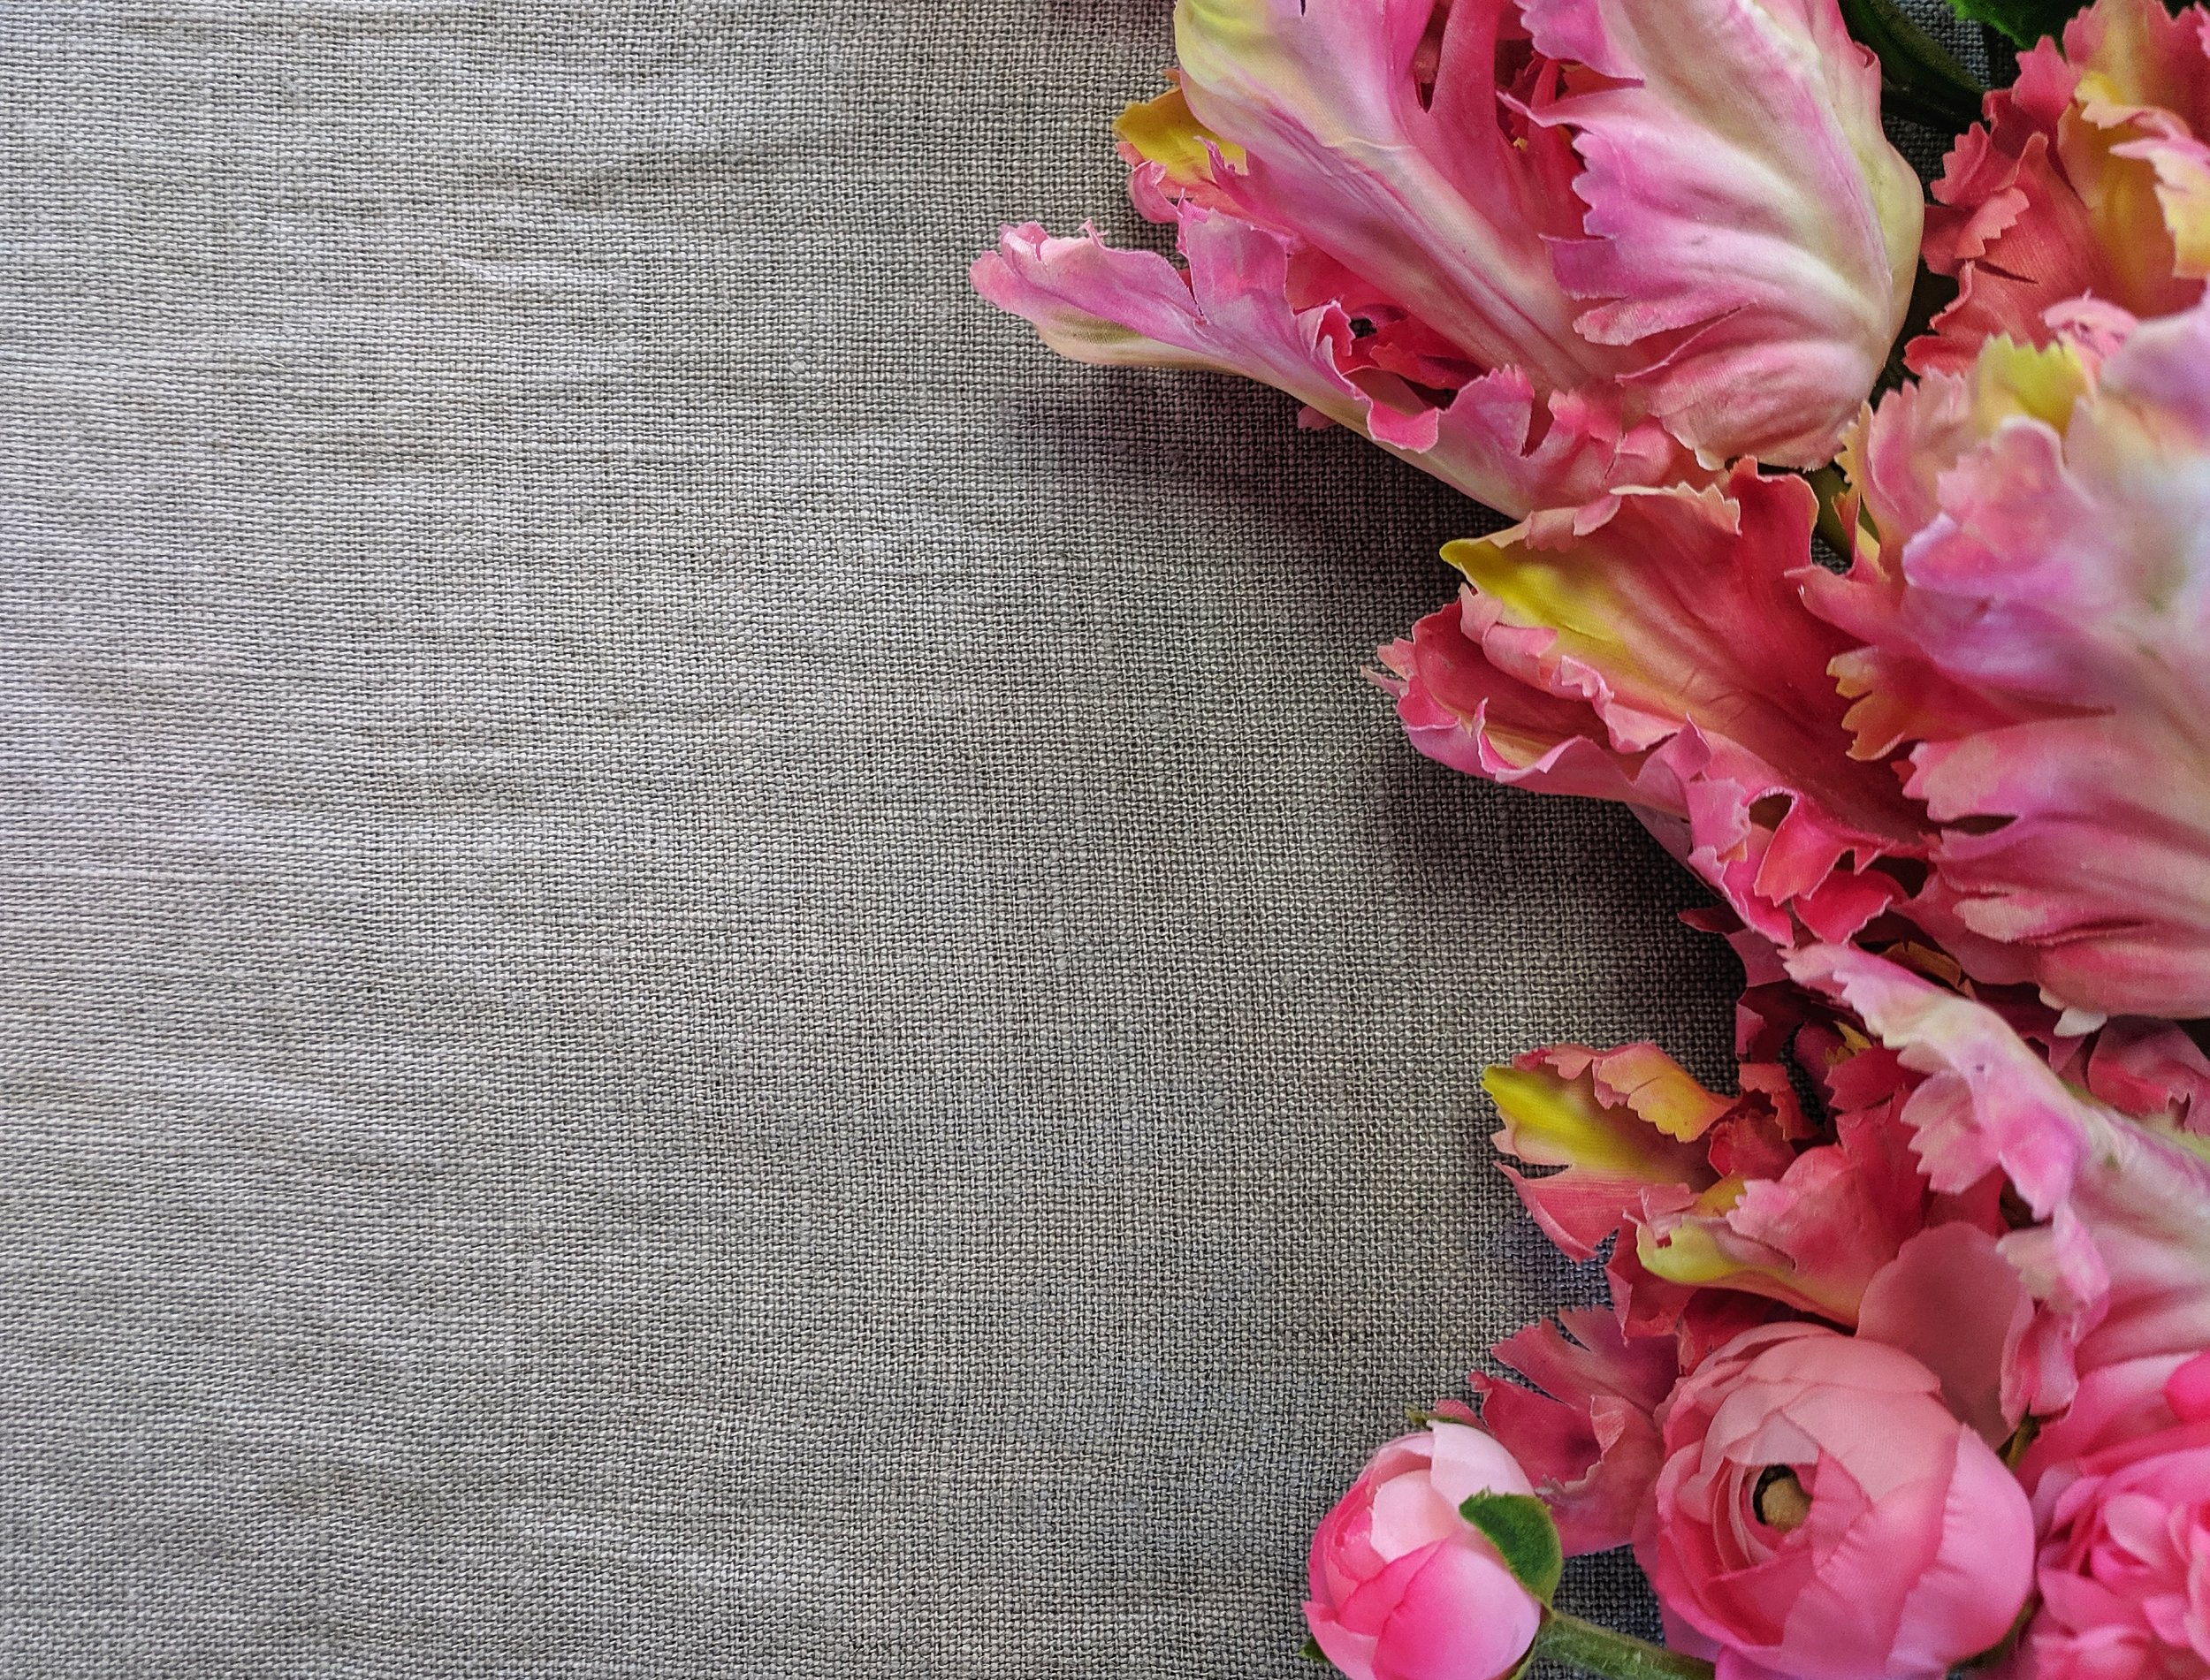 Dempsey Grey, Super Throw - The Dempsey Super Throw is100% solid linen, with tasseled edges for texture.$129.00